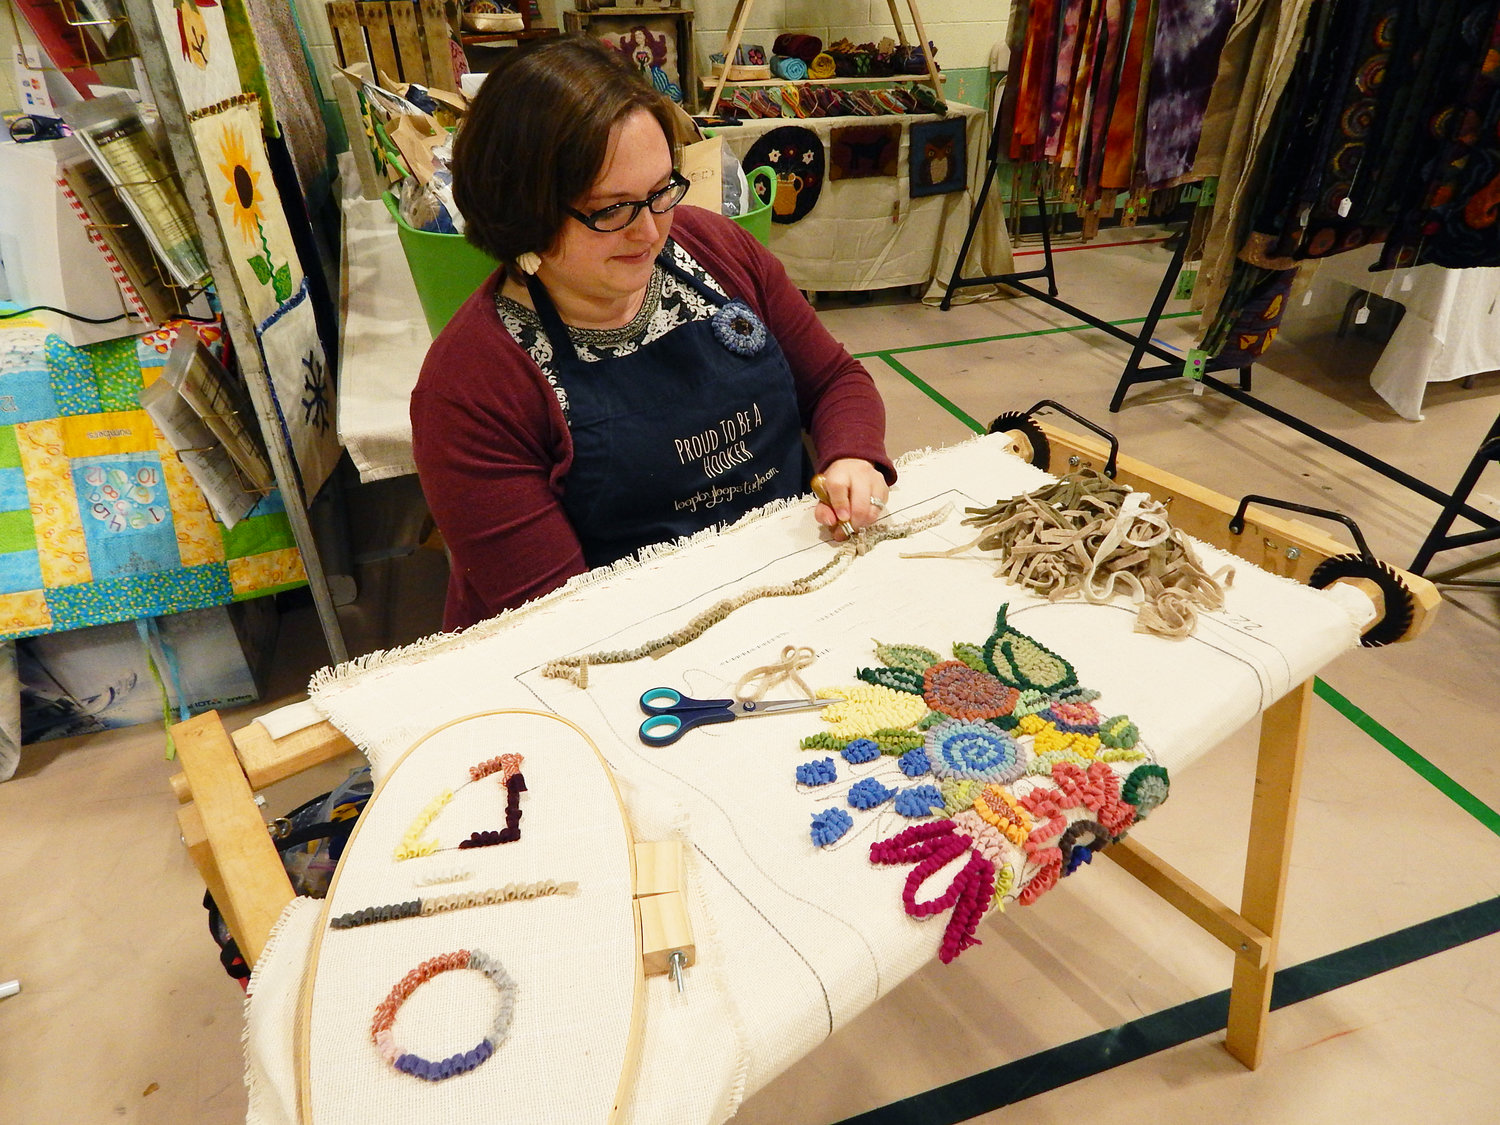 Quilting is more than just your grandma's hobby – it's an art